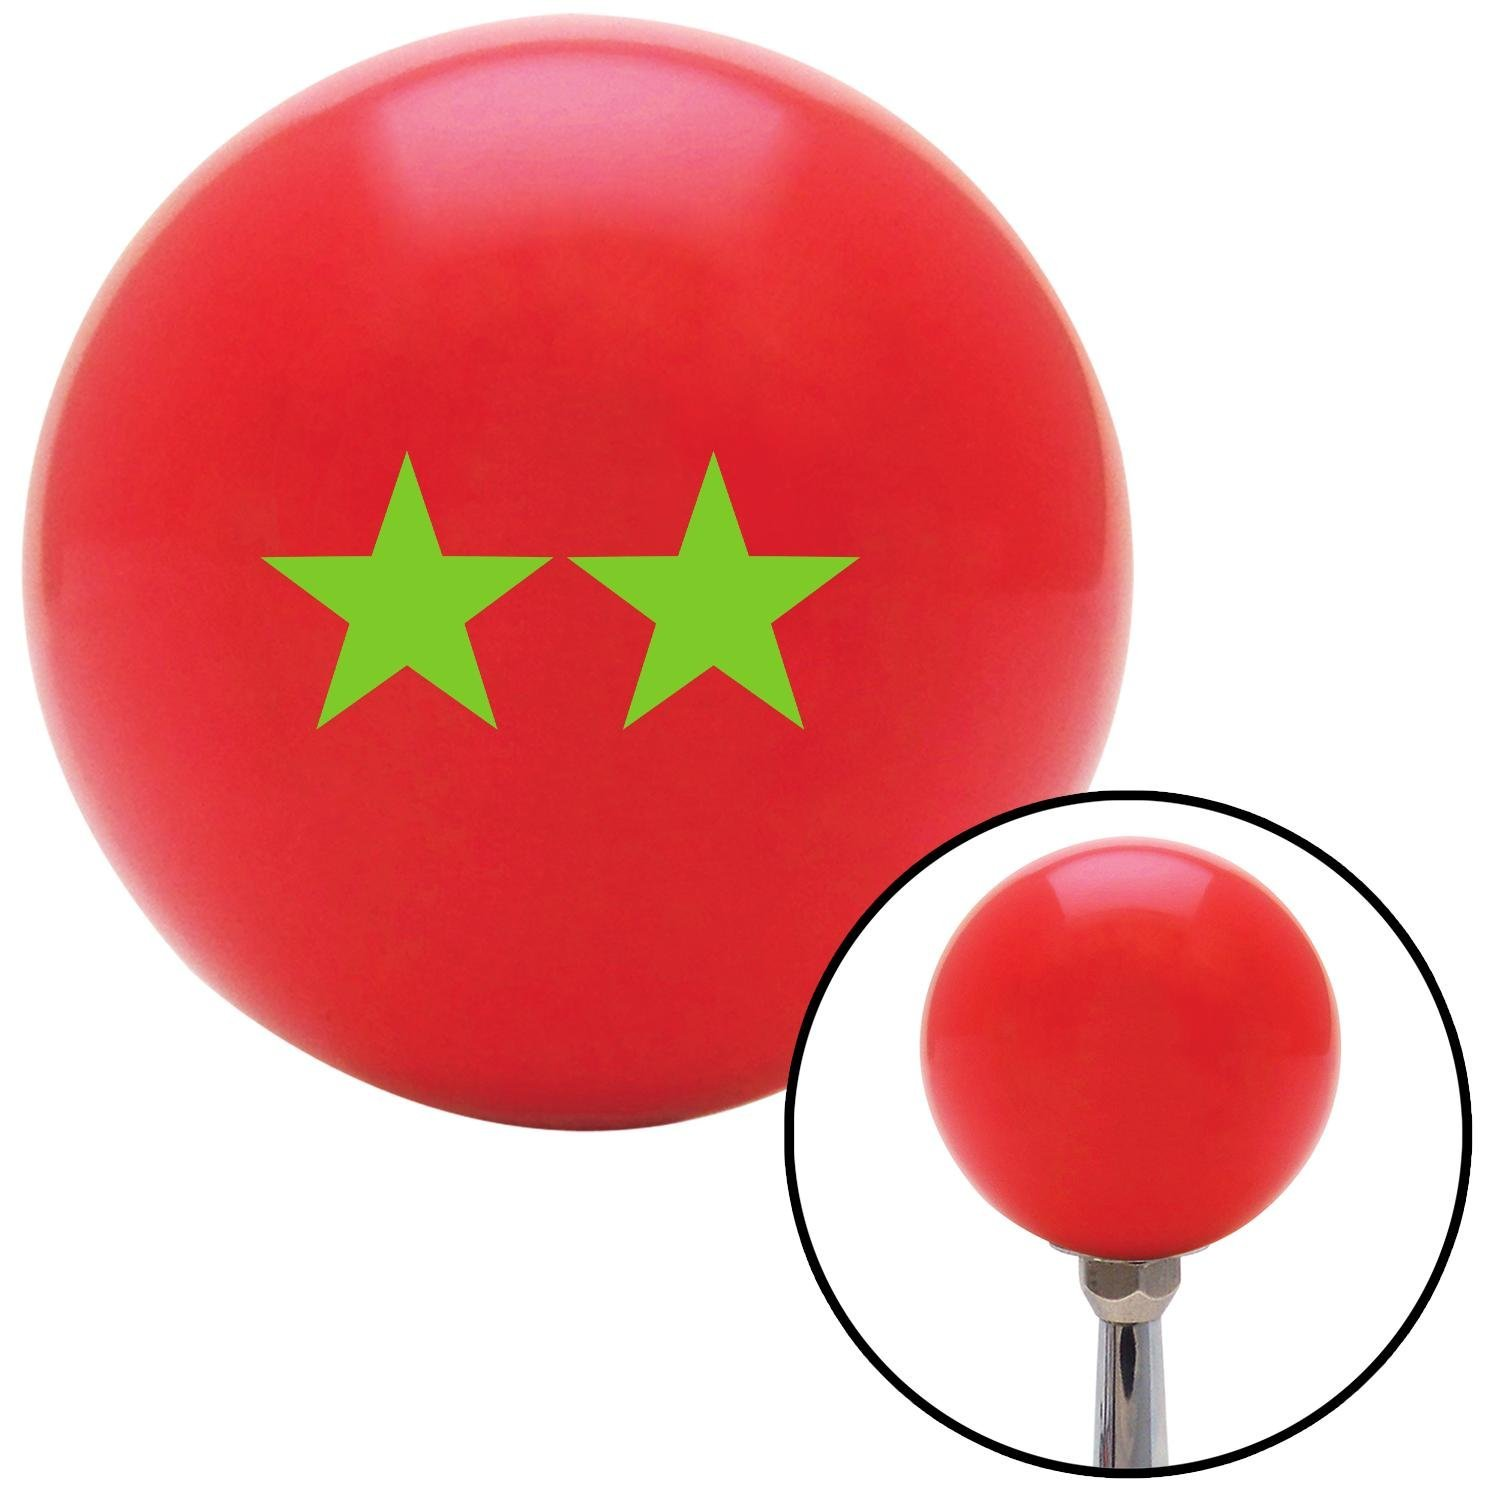 American Shifter 97826 Red Shift Knob with M16 x 1.5 Insert Green Major General